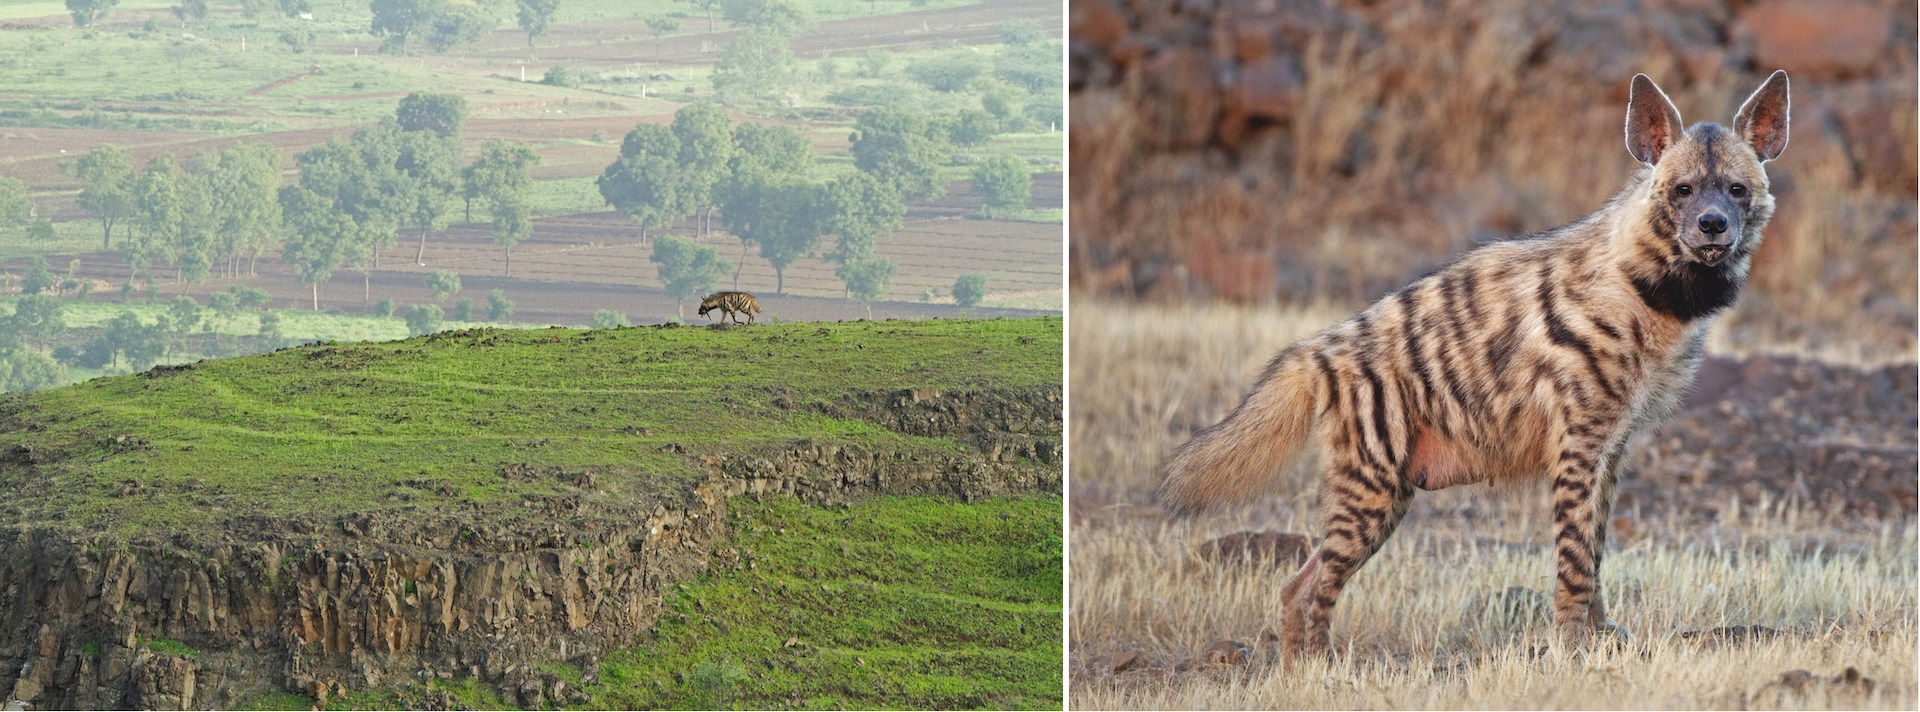 India has just one hyena species: the striped hyena (Hyaena hyaena). Although hyenas have a bad reputation, these nocturnal predators are a crucial part of the ecosystem. In addition to hunting, they scavenge on carrion, which also prevents the spread of disease from rotting meat.